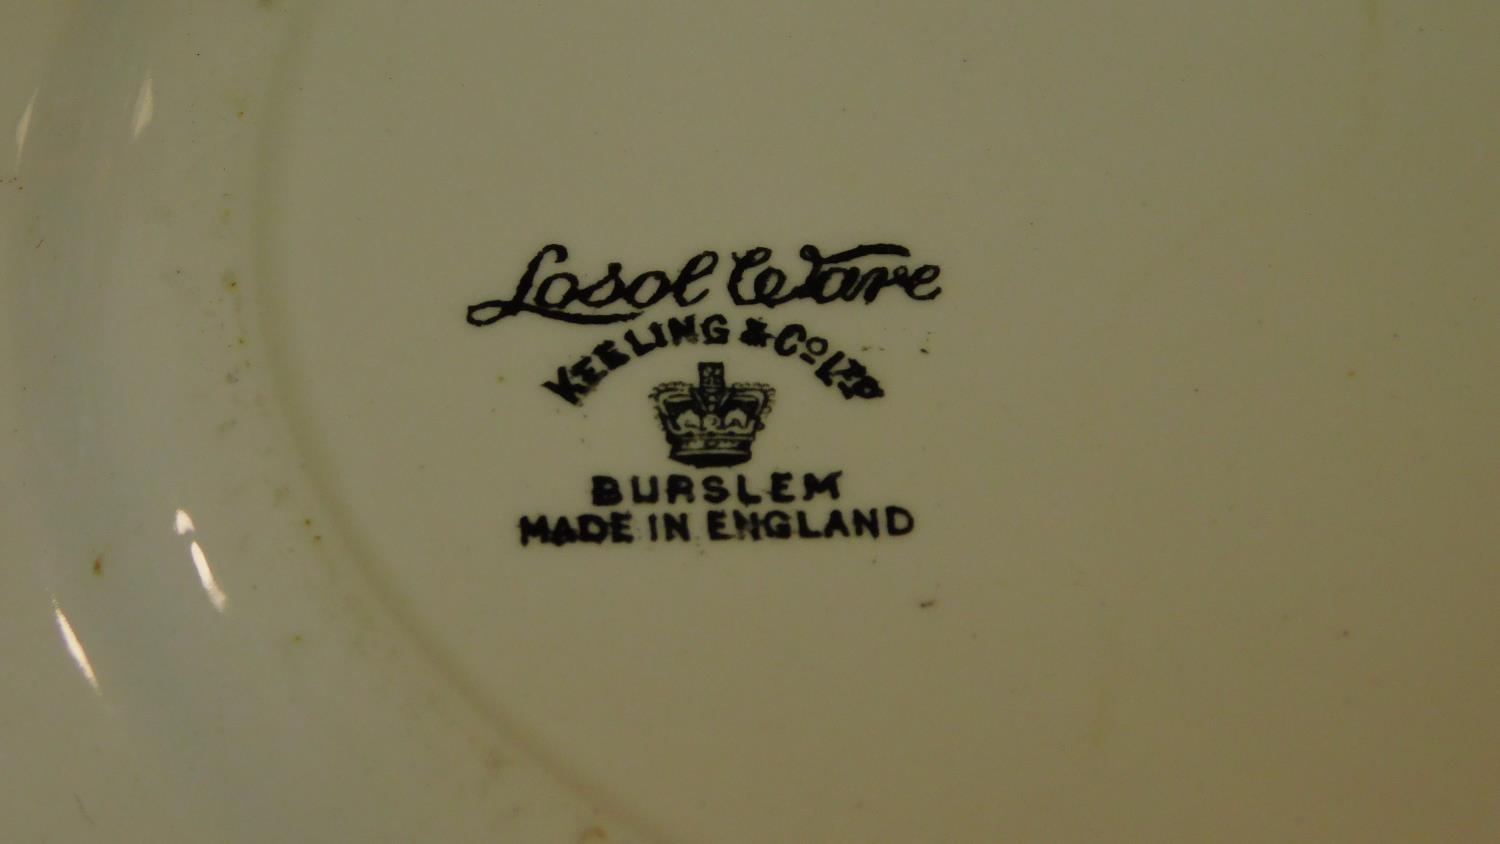 A Loselware part dinner service, dinner plates, side plates, soup bowls, tureens etc. - Image 6 of 6